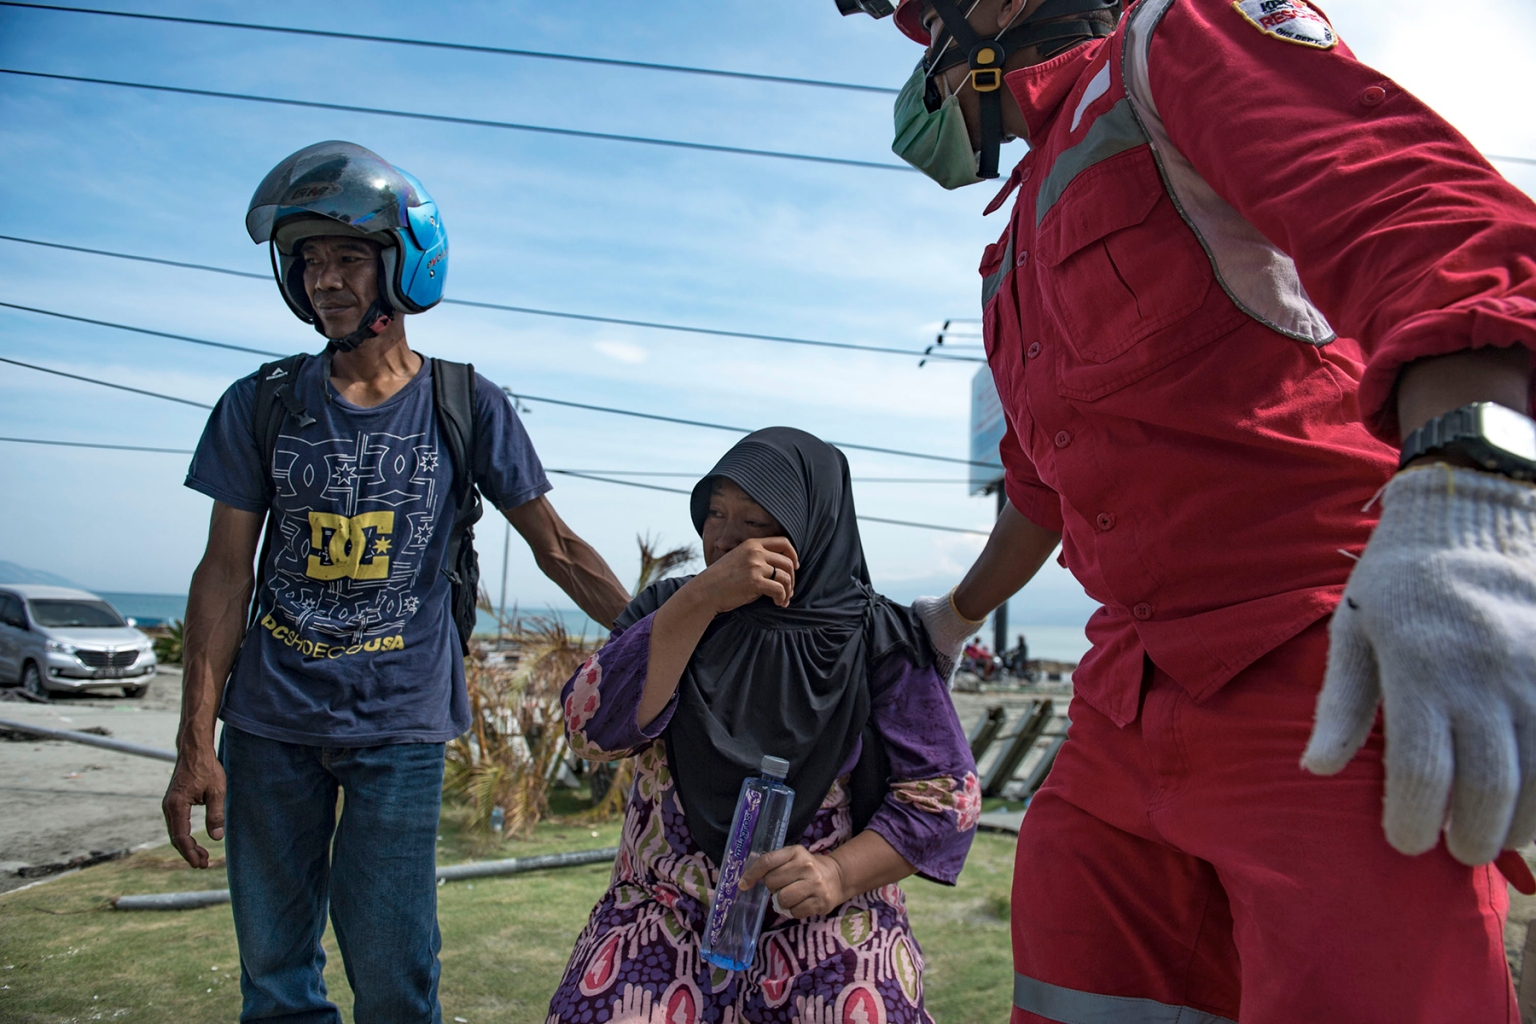 A member of a search-and-rescue team tries to calm Hadija, an Indonesian woman who is awaiting news on her brother outside the badly damaged Mercure hotel in Palu in Central Sulawesi on Oct. 4 after the earthquake and tsunami there. Bay Ismoyo/AFP/Getty Images